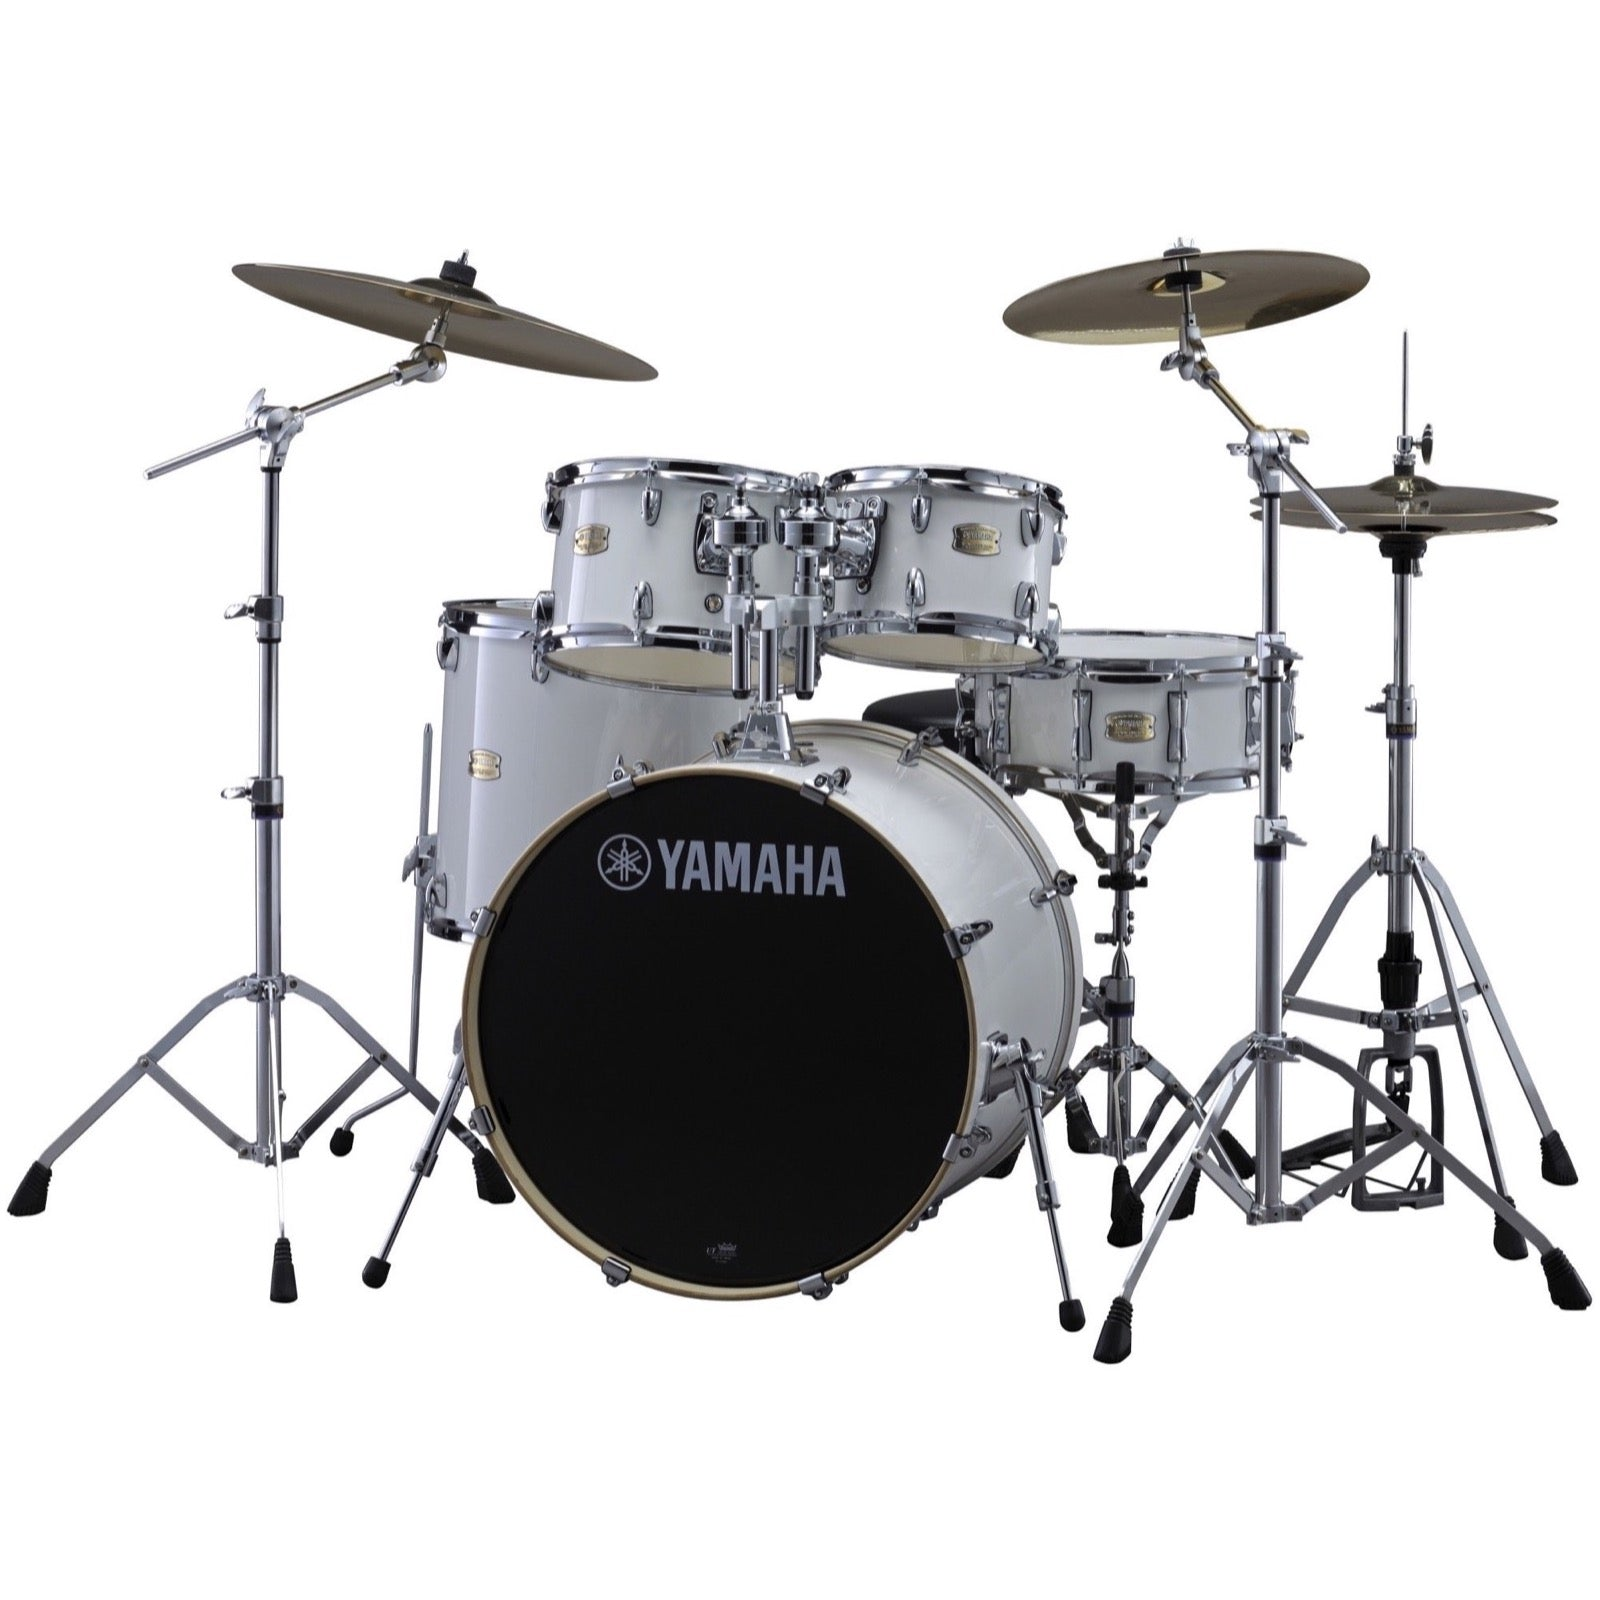 Yamaha SBP2F50 Stage Custom Drum Shell Kit, 5-Piece, Pure White